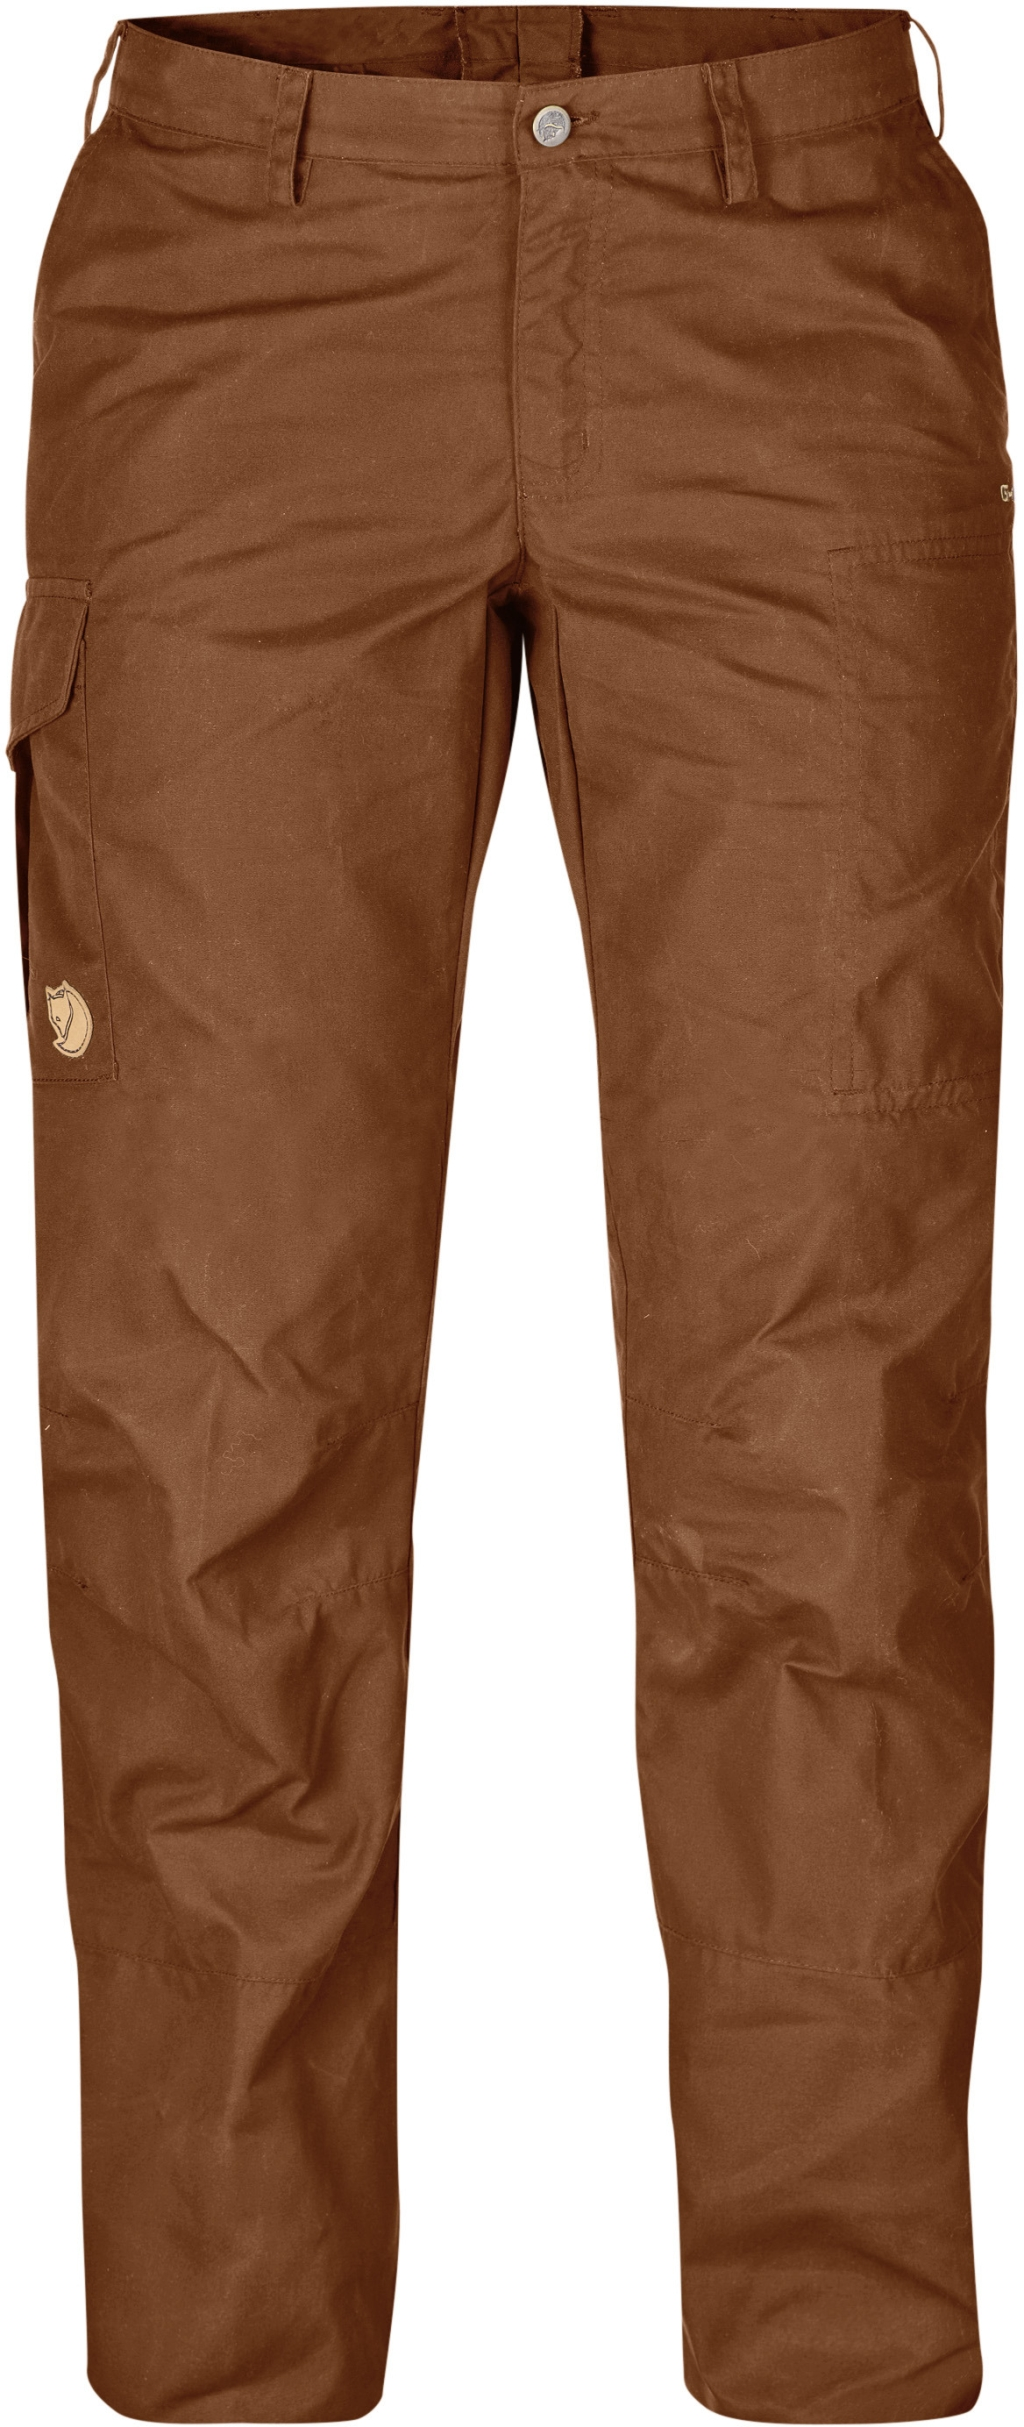 FjallRaven Karla Pro Trousers Curved Chestnut-30